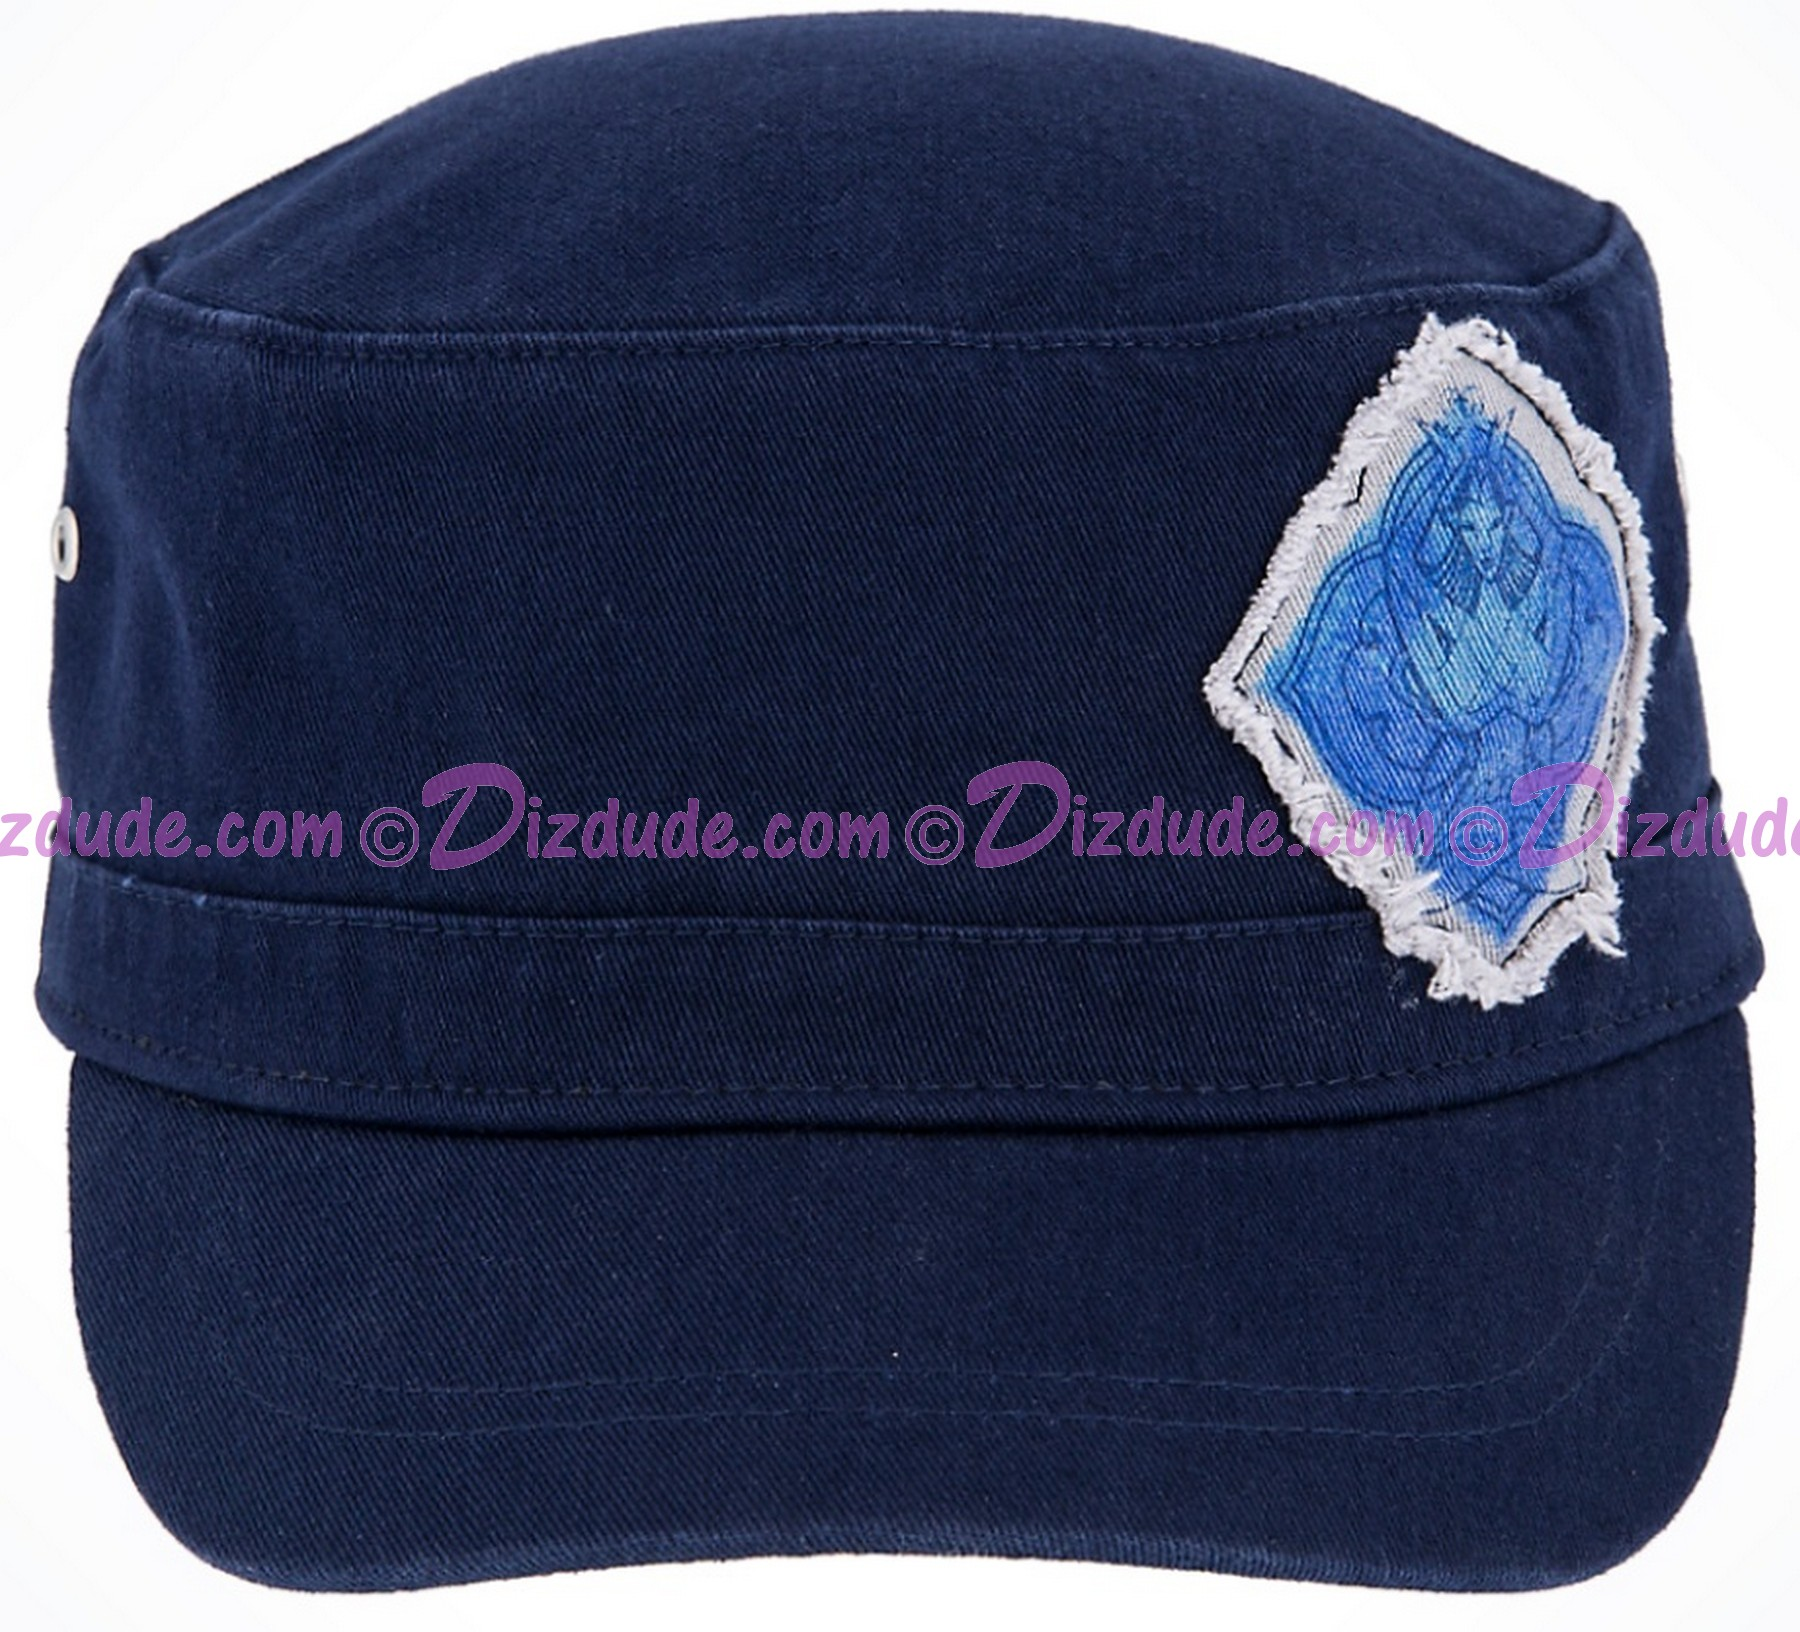 Avatar Na'vi Shaman Cadet Hat - Disney Pandora – The World of Avatar © Dizdude.com